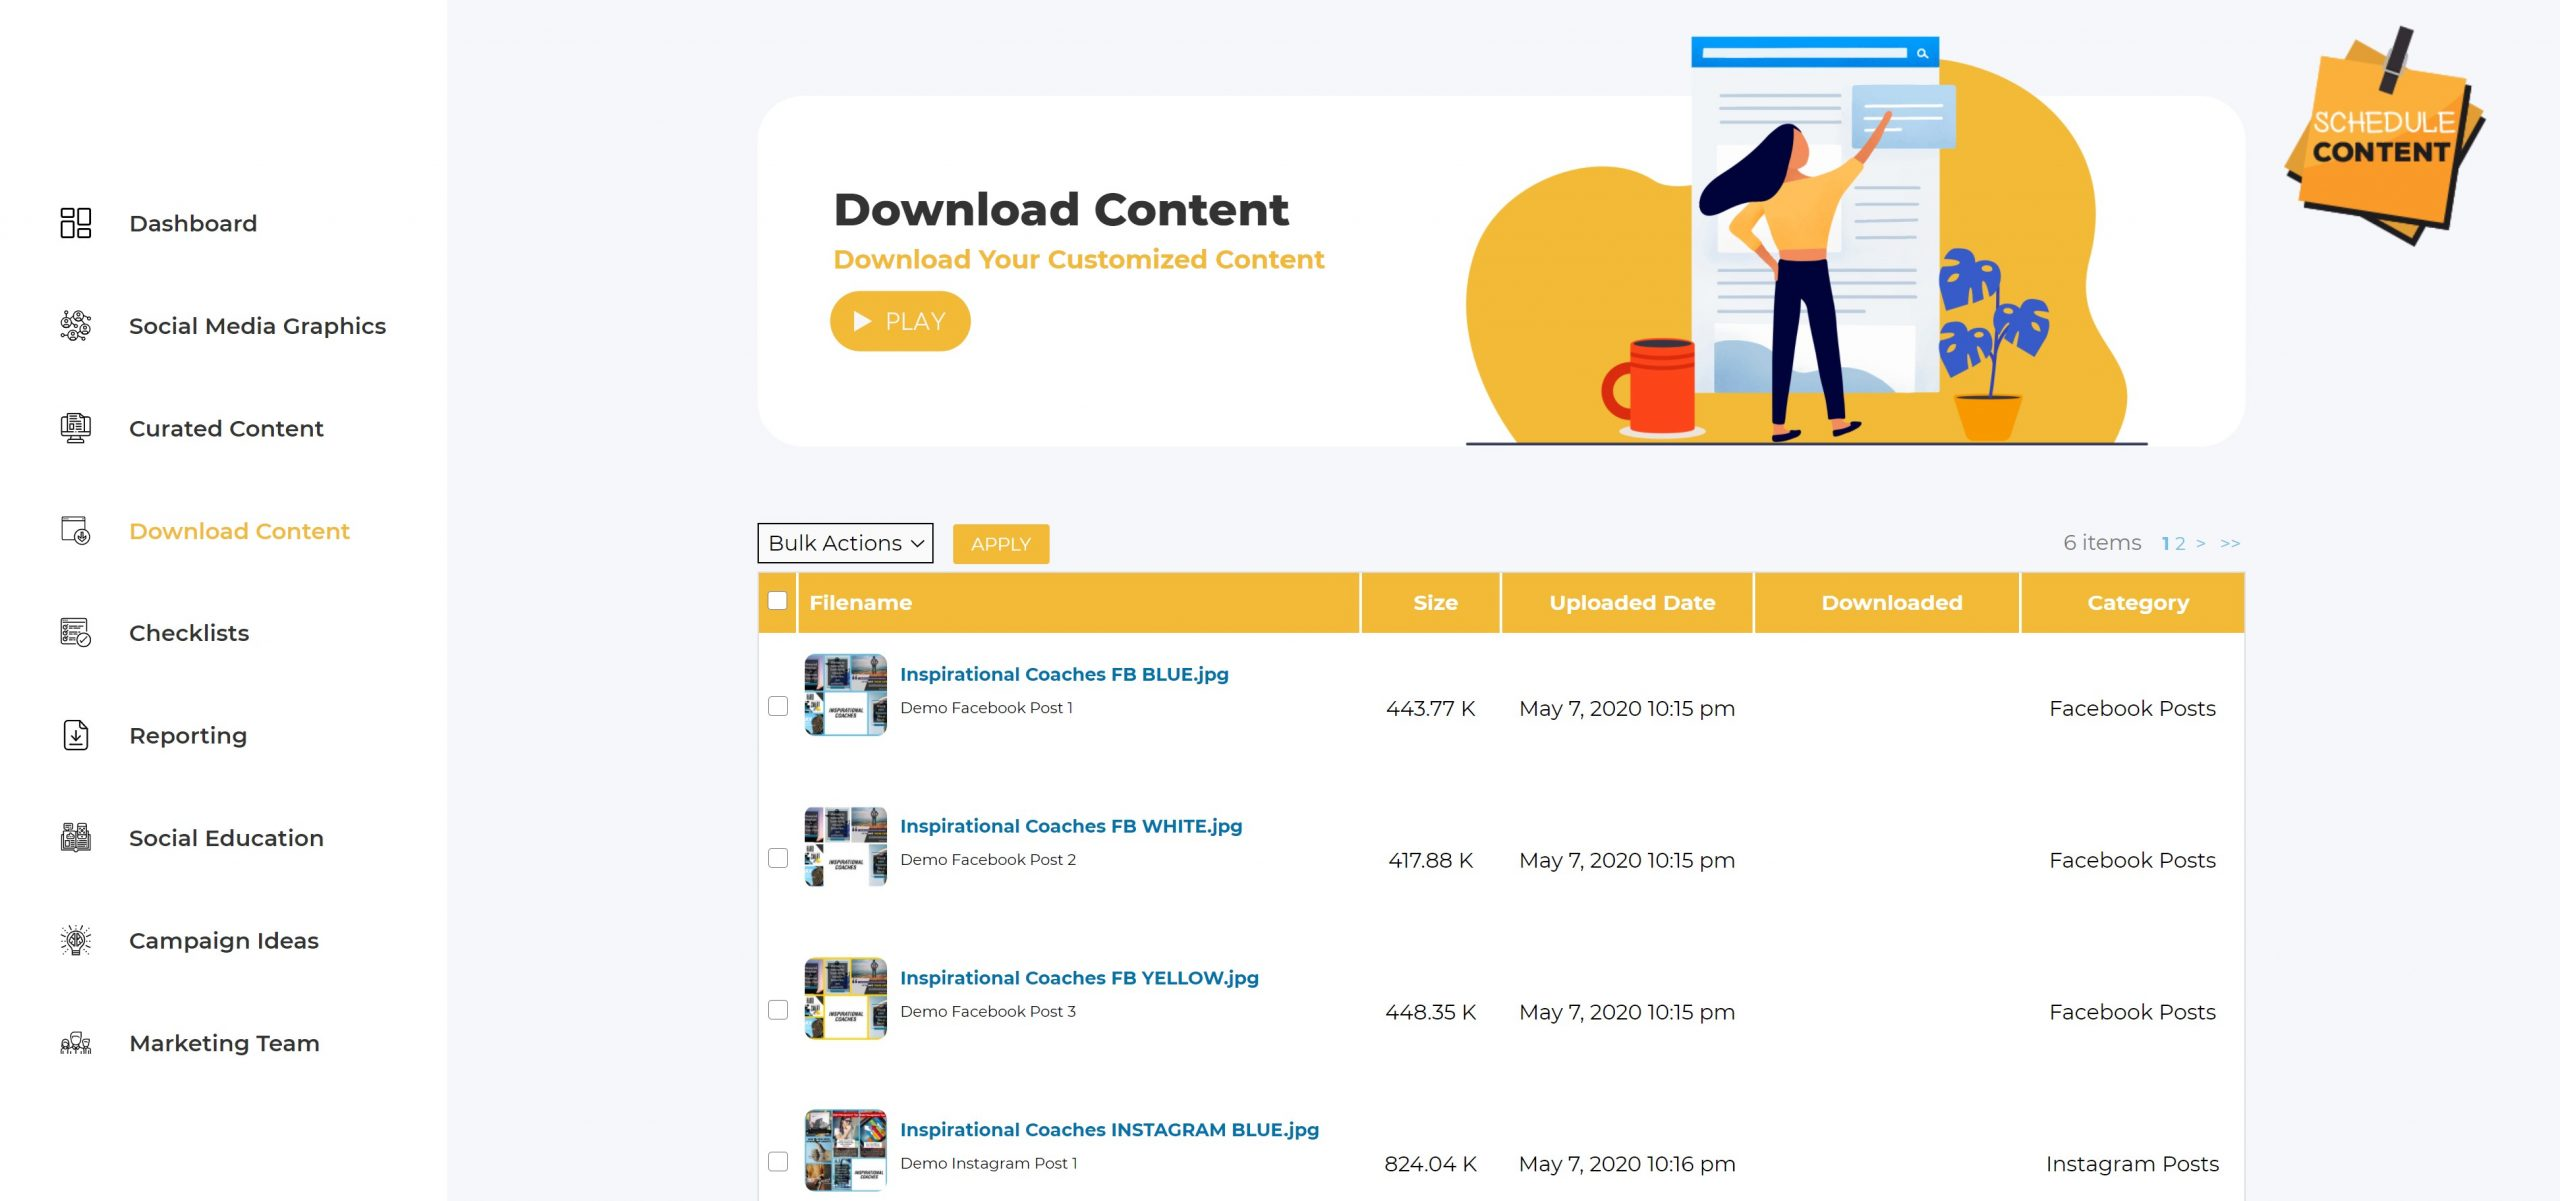 Download your customized content